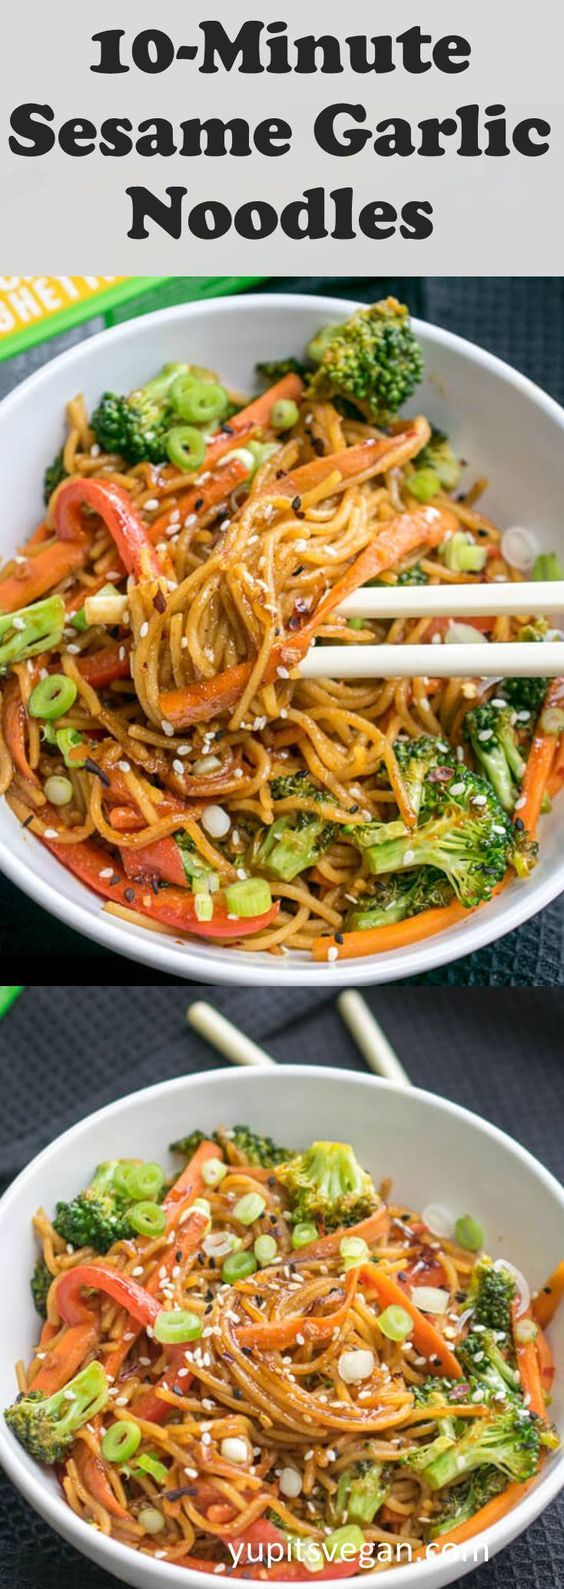 10-Minute Sesame Garlic Protein Noodles! Totally v…